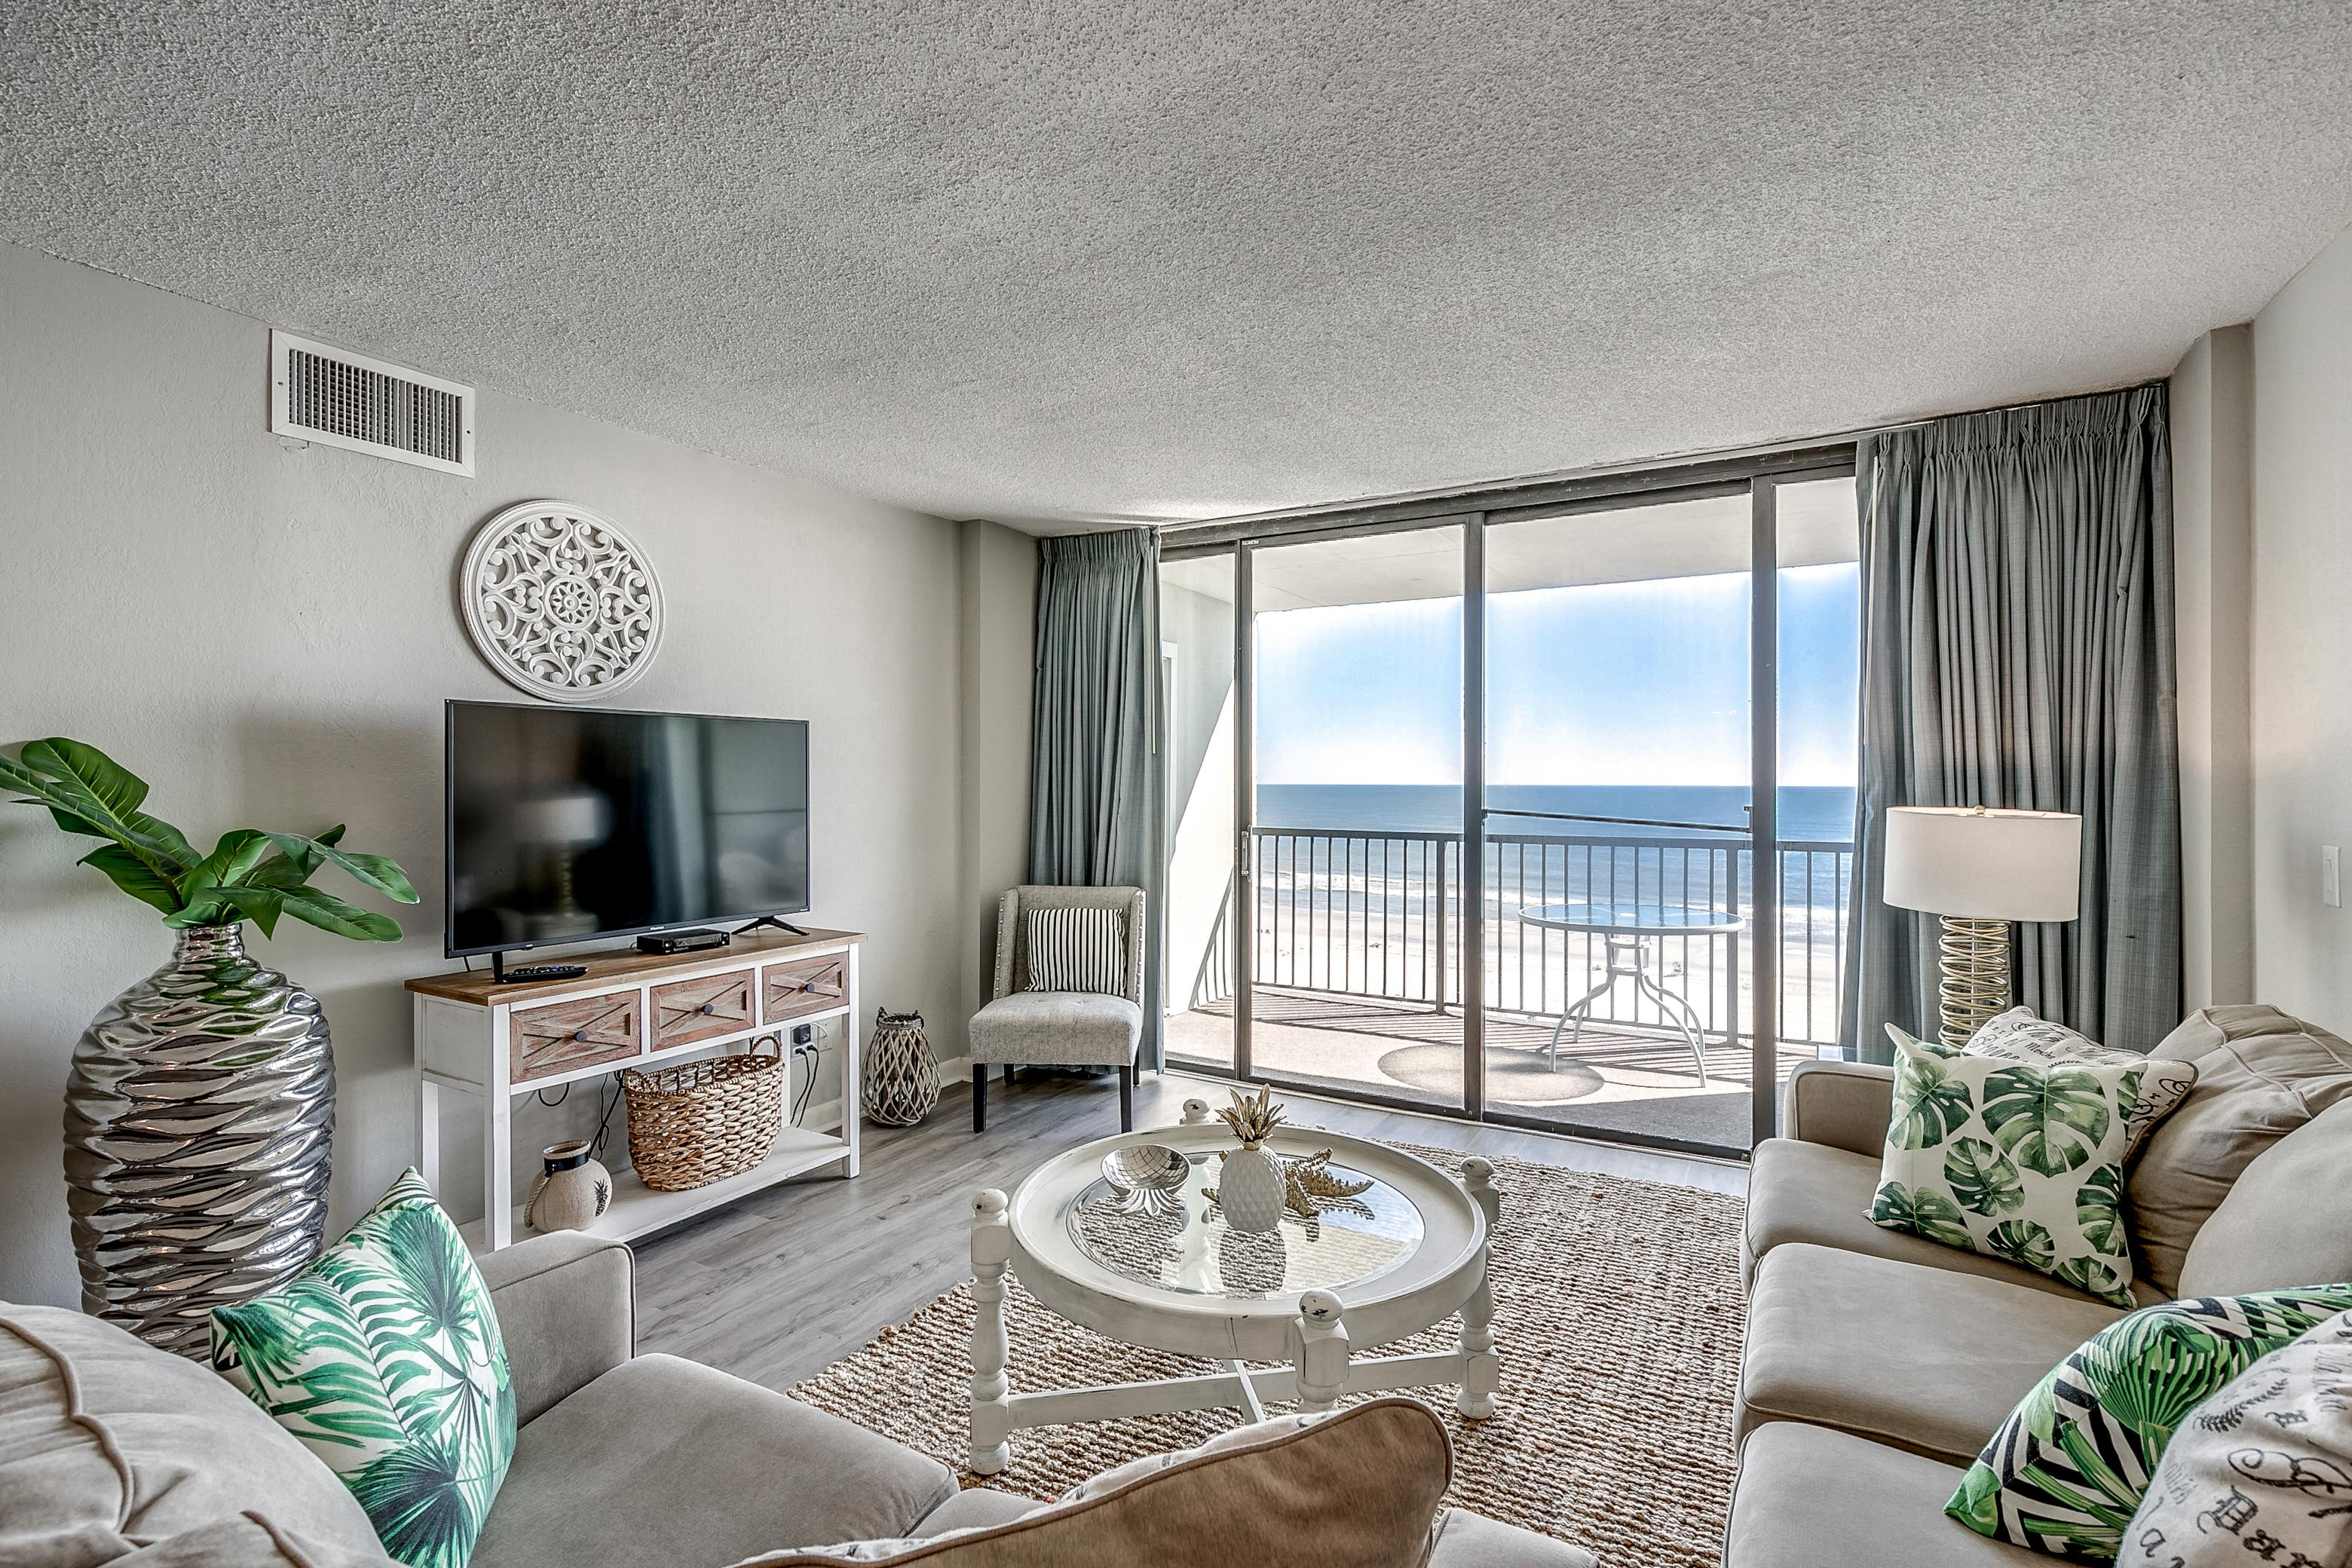 Property Image 2 - Remodeled Oceanfront Condo with Beautiful Views